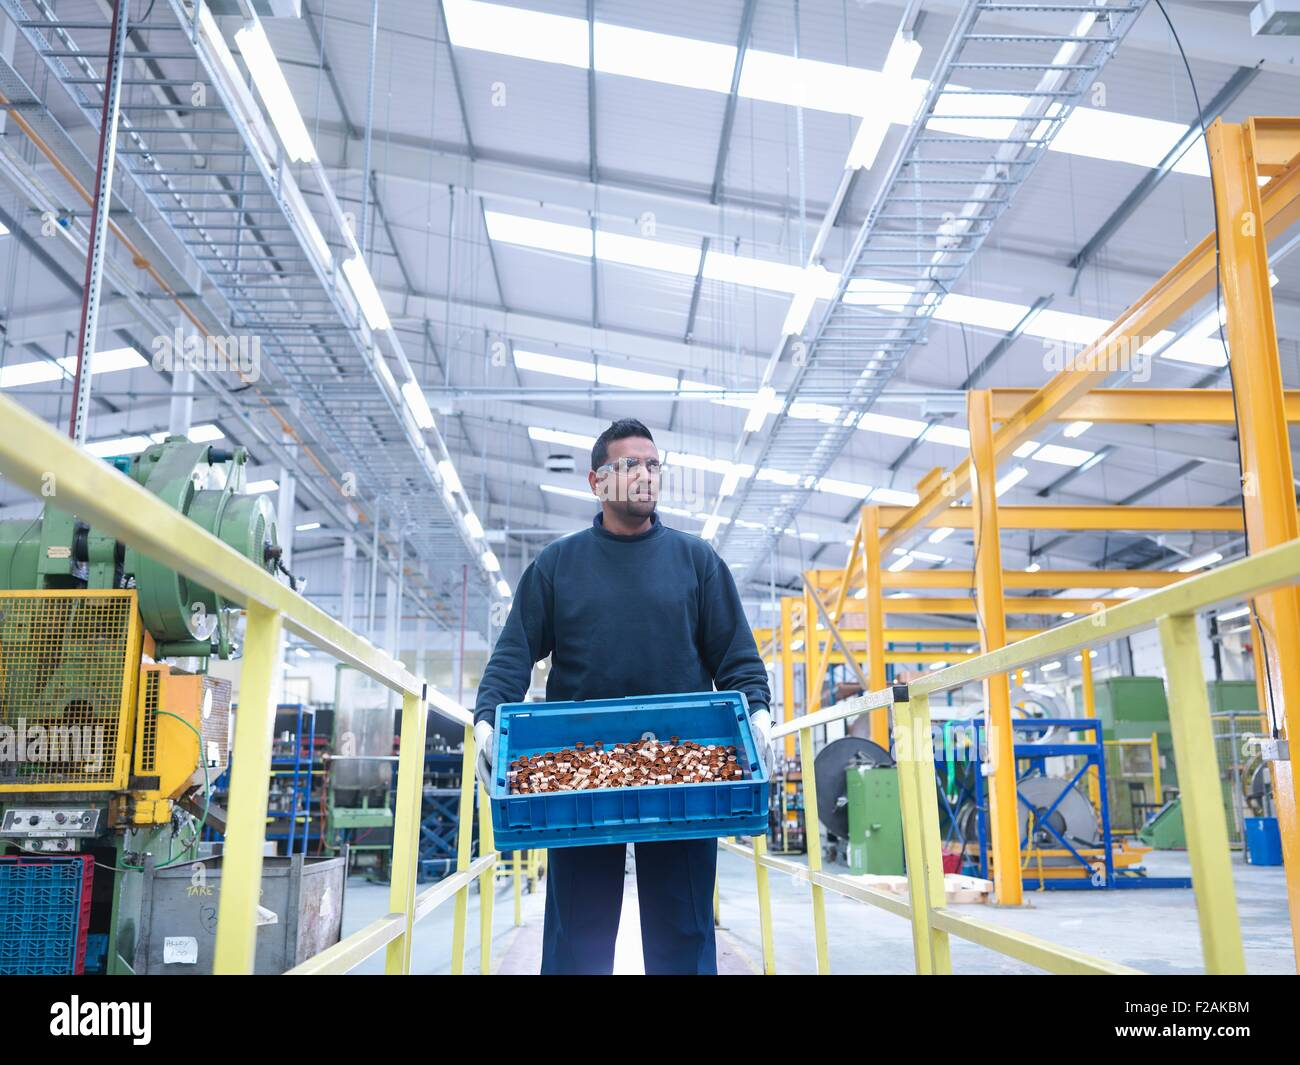 Engineer carrying product in engineering factory - Stock Image